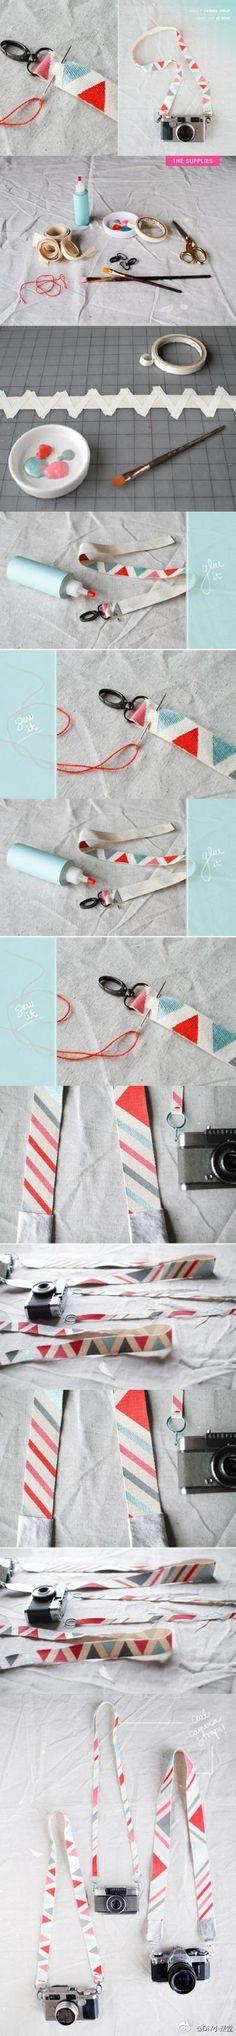 diy: camera strap, could also just cover the original camera strap